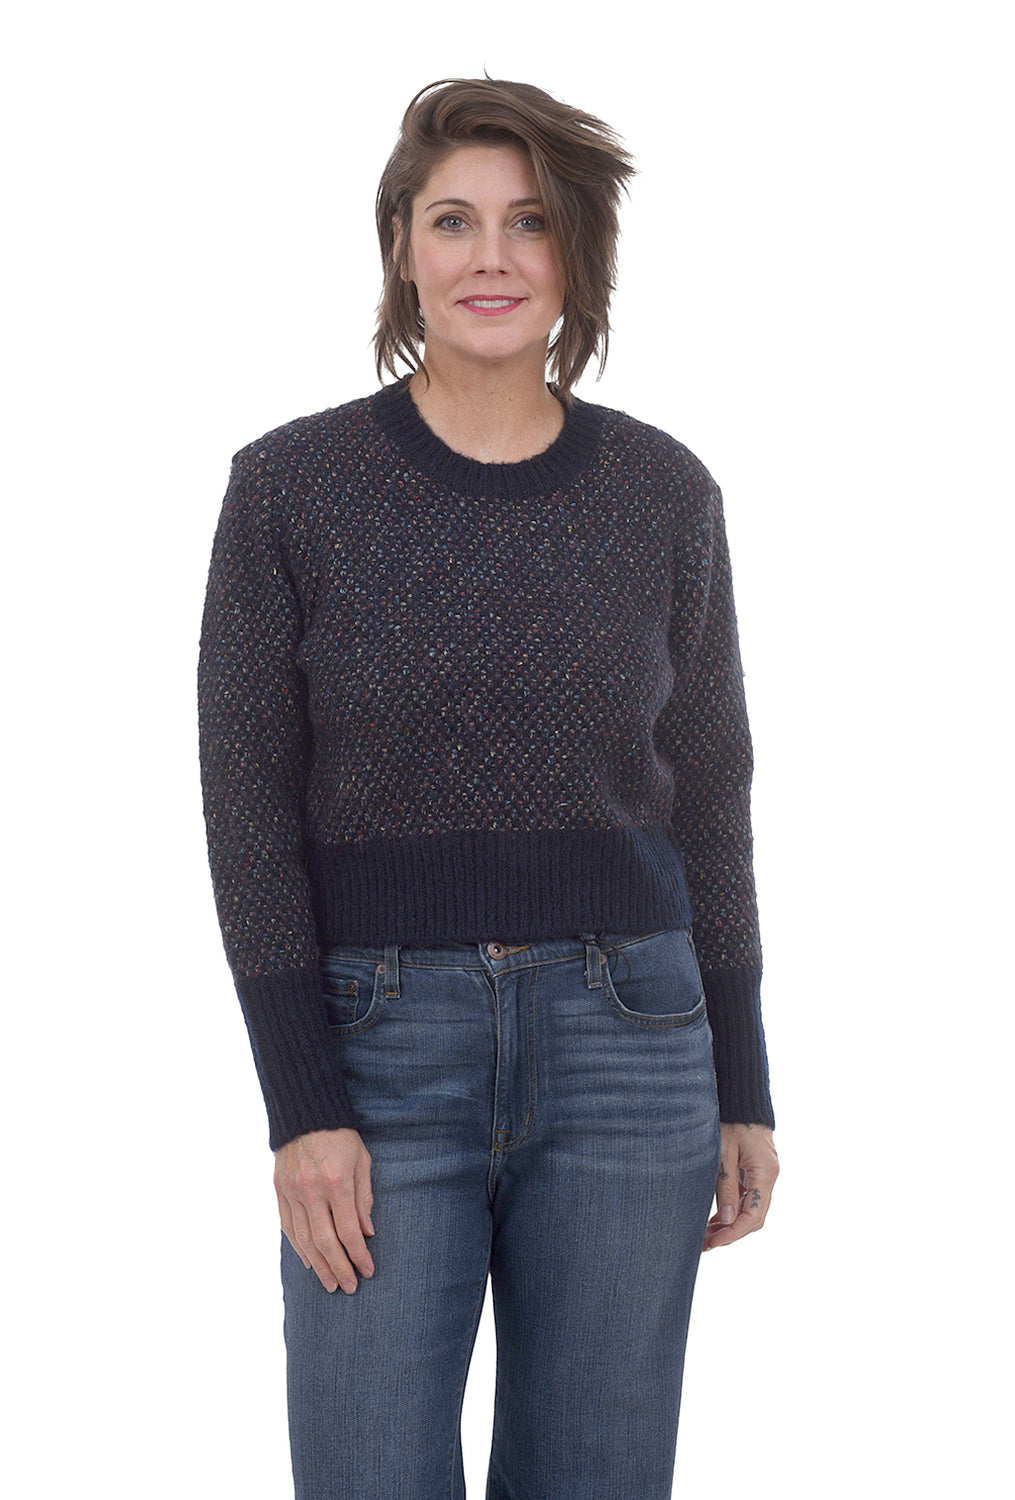 RD International Cozy Confetti Knit Sweater, Navy